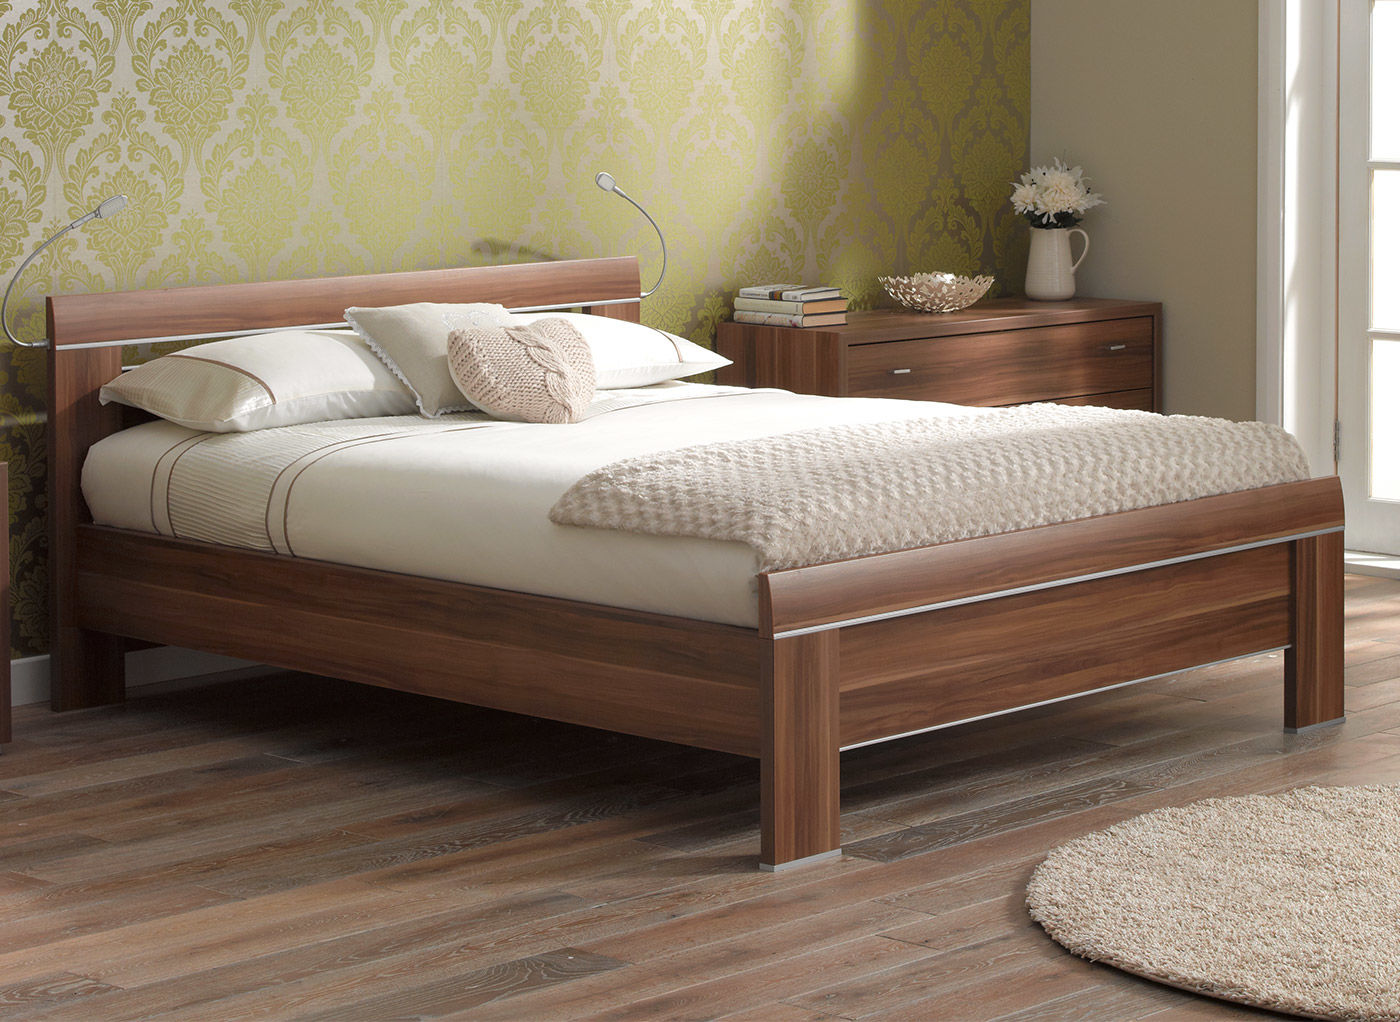 wooden beds berkeley bed frame walnut OXVQOQF